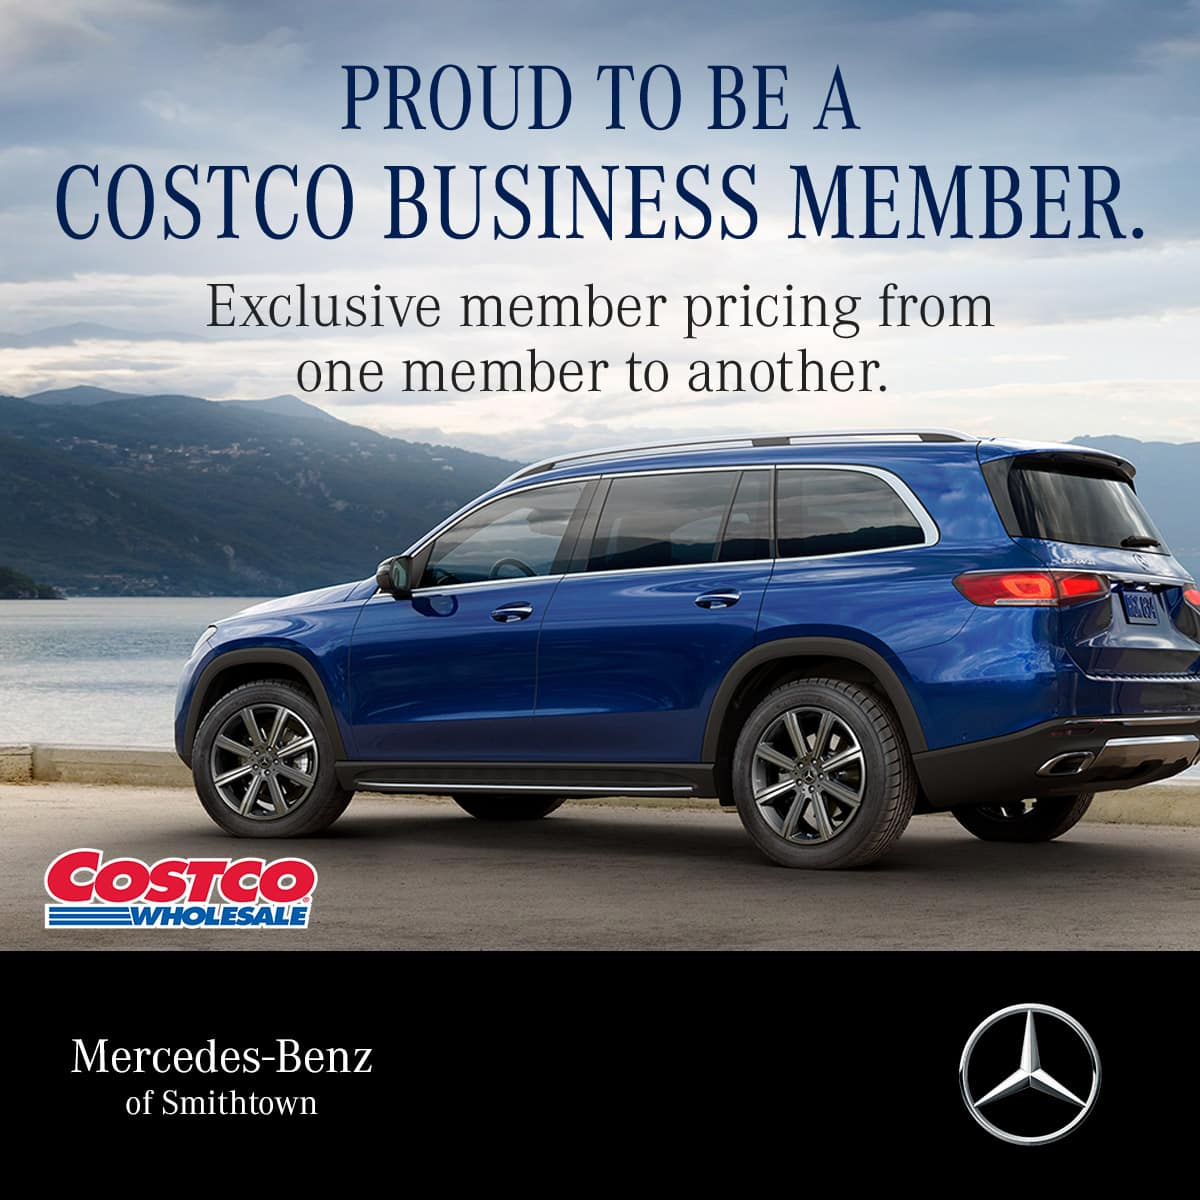 Costco Auto Program >> Costco Auto Program Mercedes Benz Of Smithtown